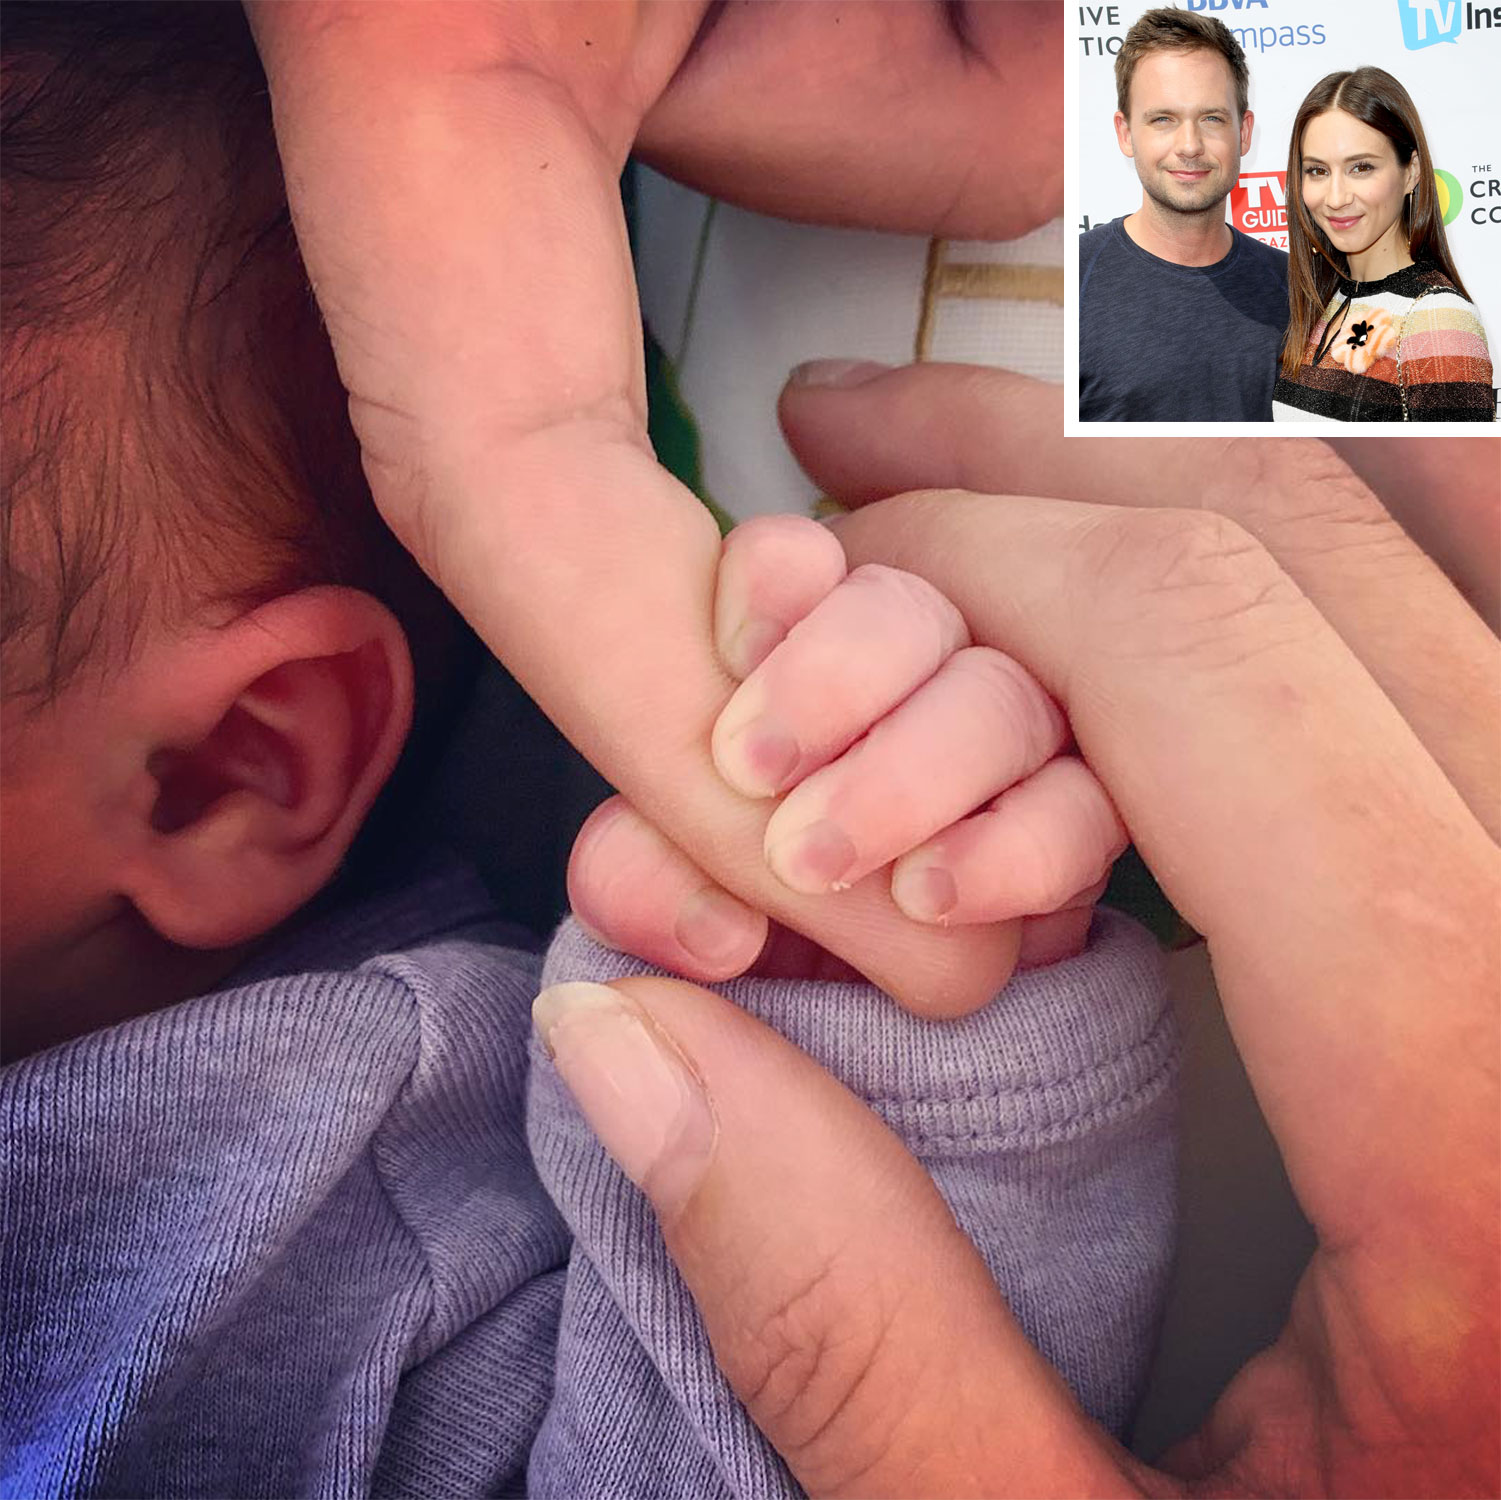 Patrick J. Adams & Troian Bellisario Became Parents After The Birth Of Their 1st Baby Girl